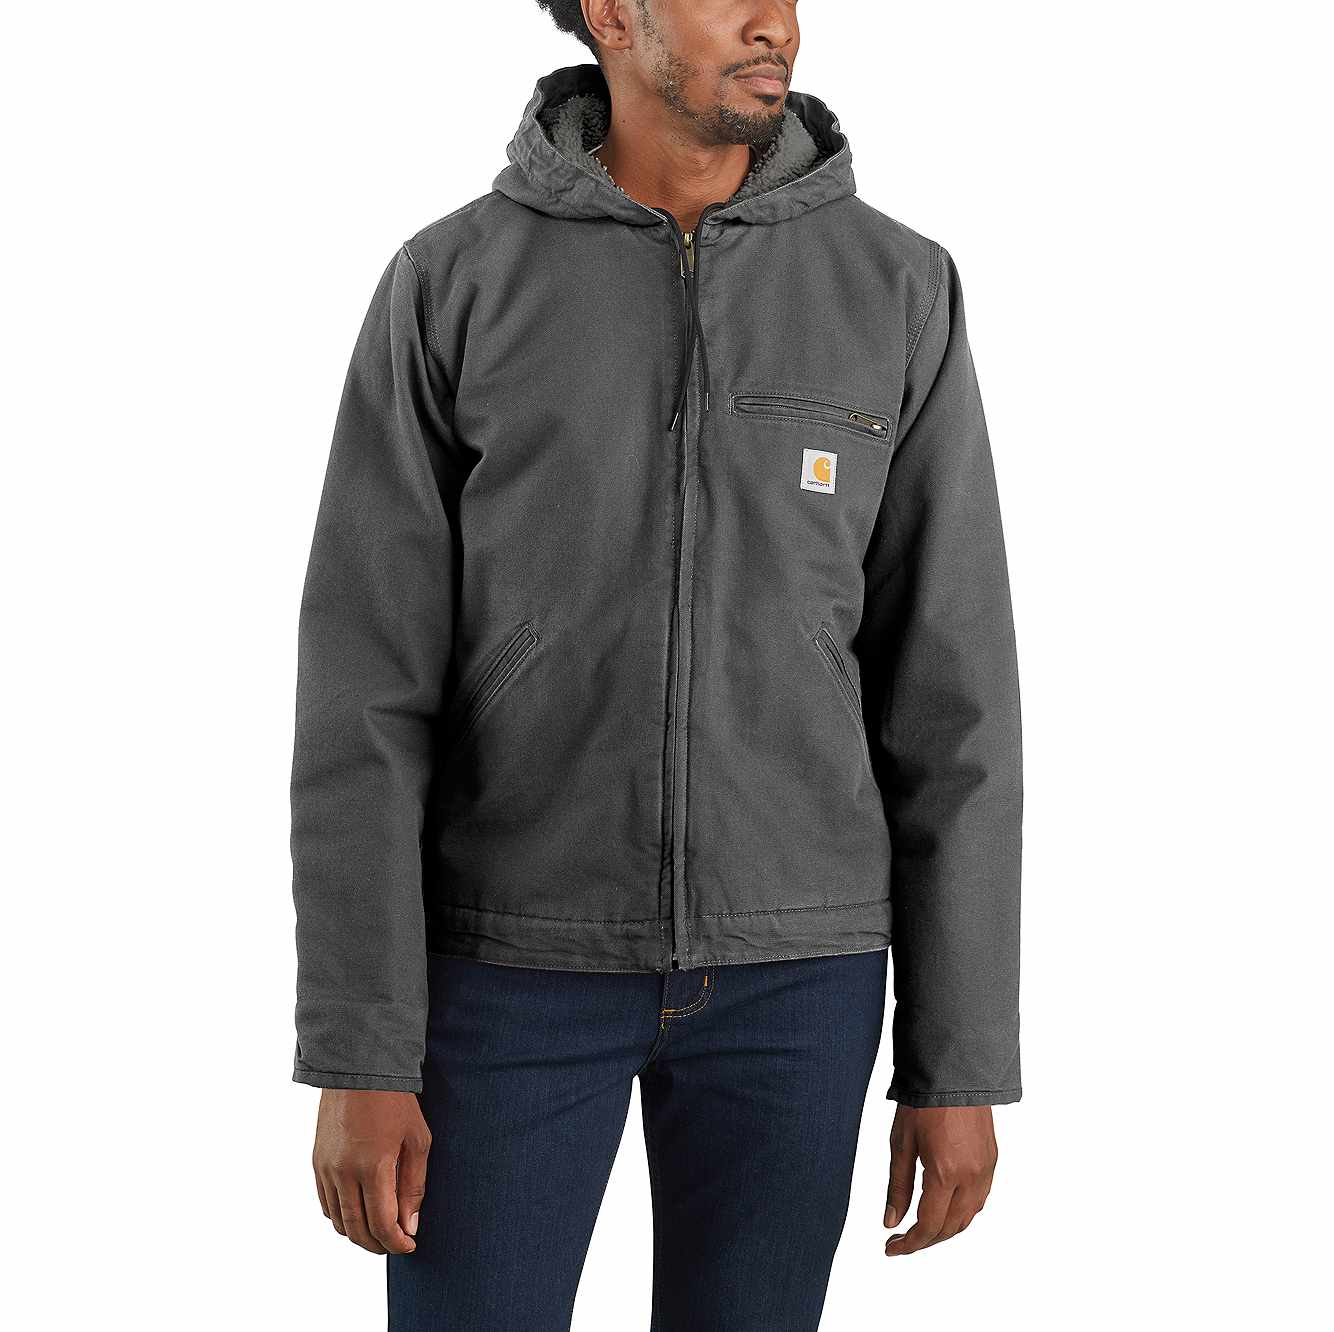 Picture of Carhartt® Washed Duck Sherpa Lined Jacket in Gravel